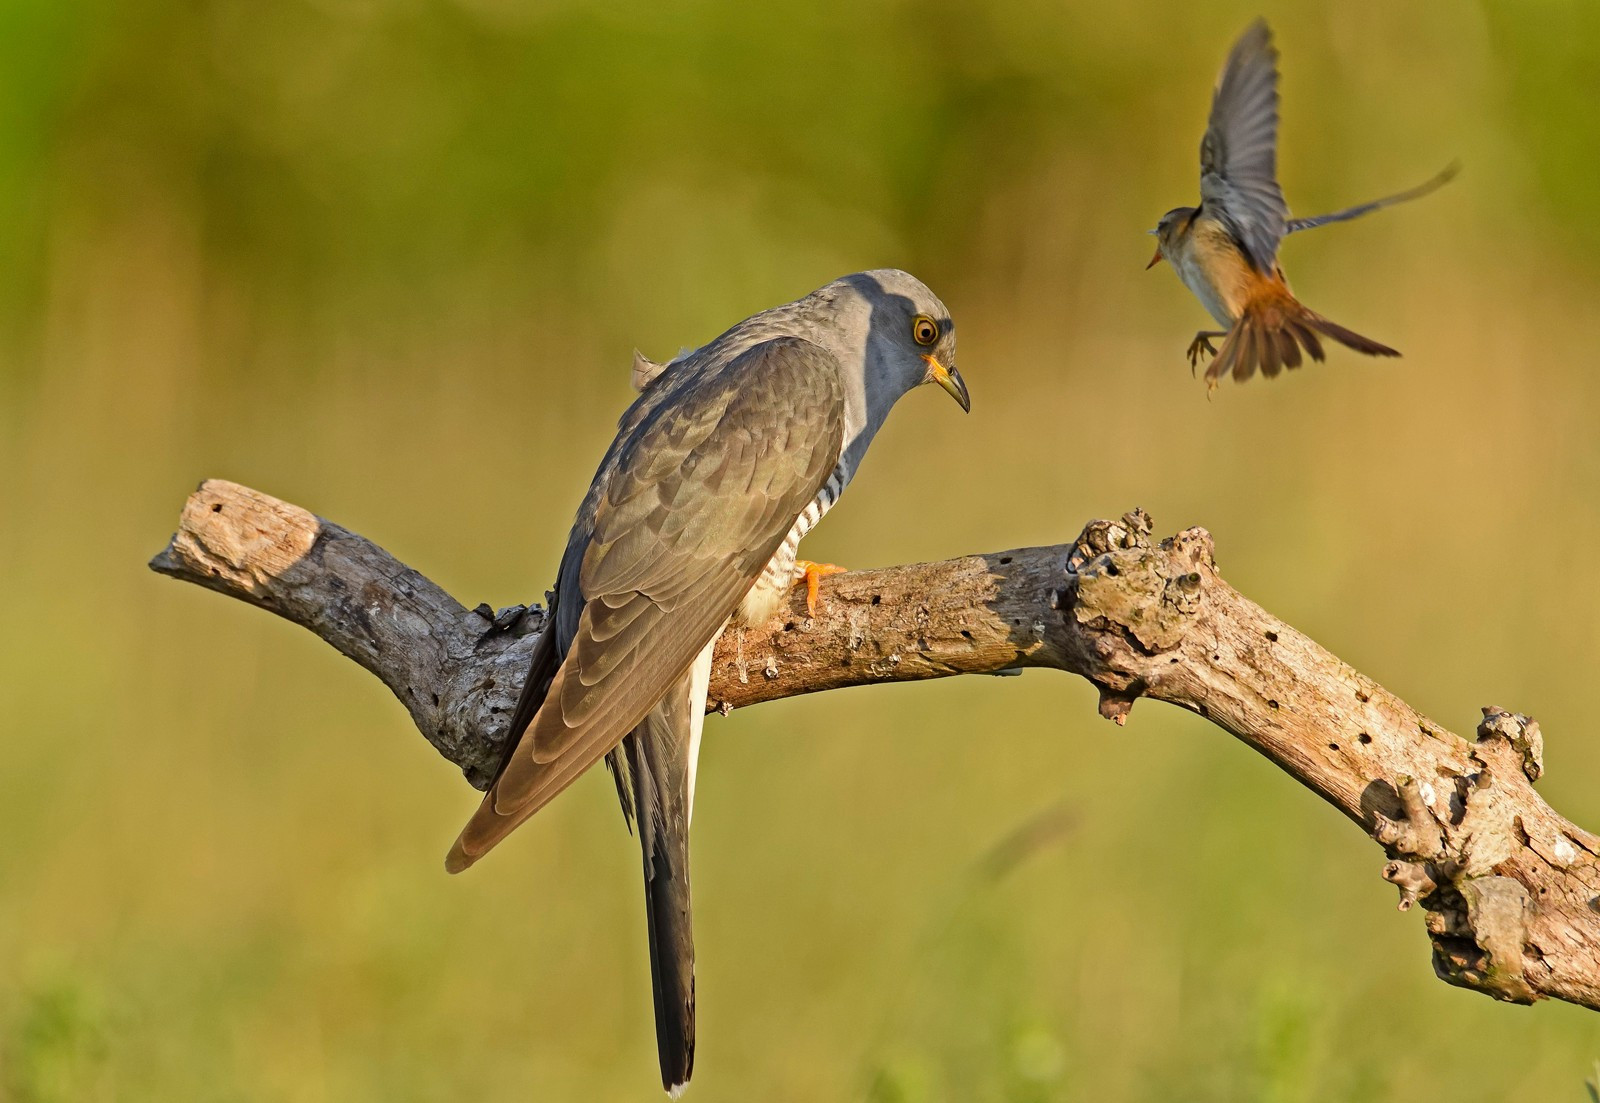 Common Cuckoo with Sedge Warbler